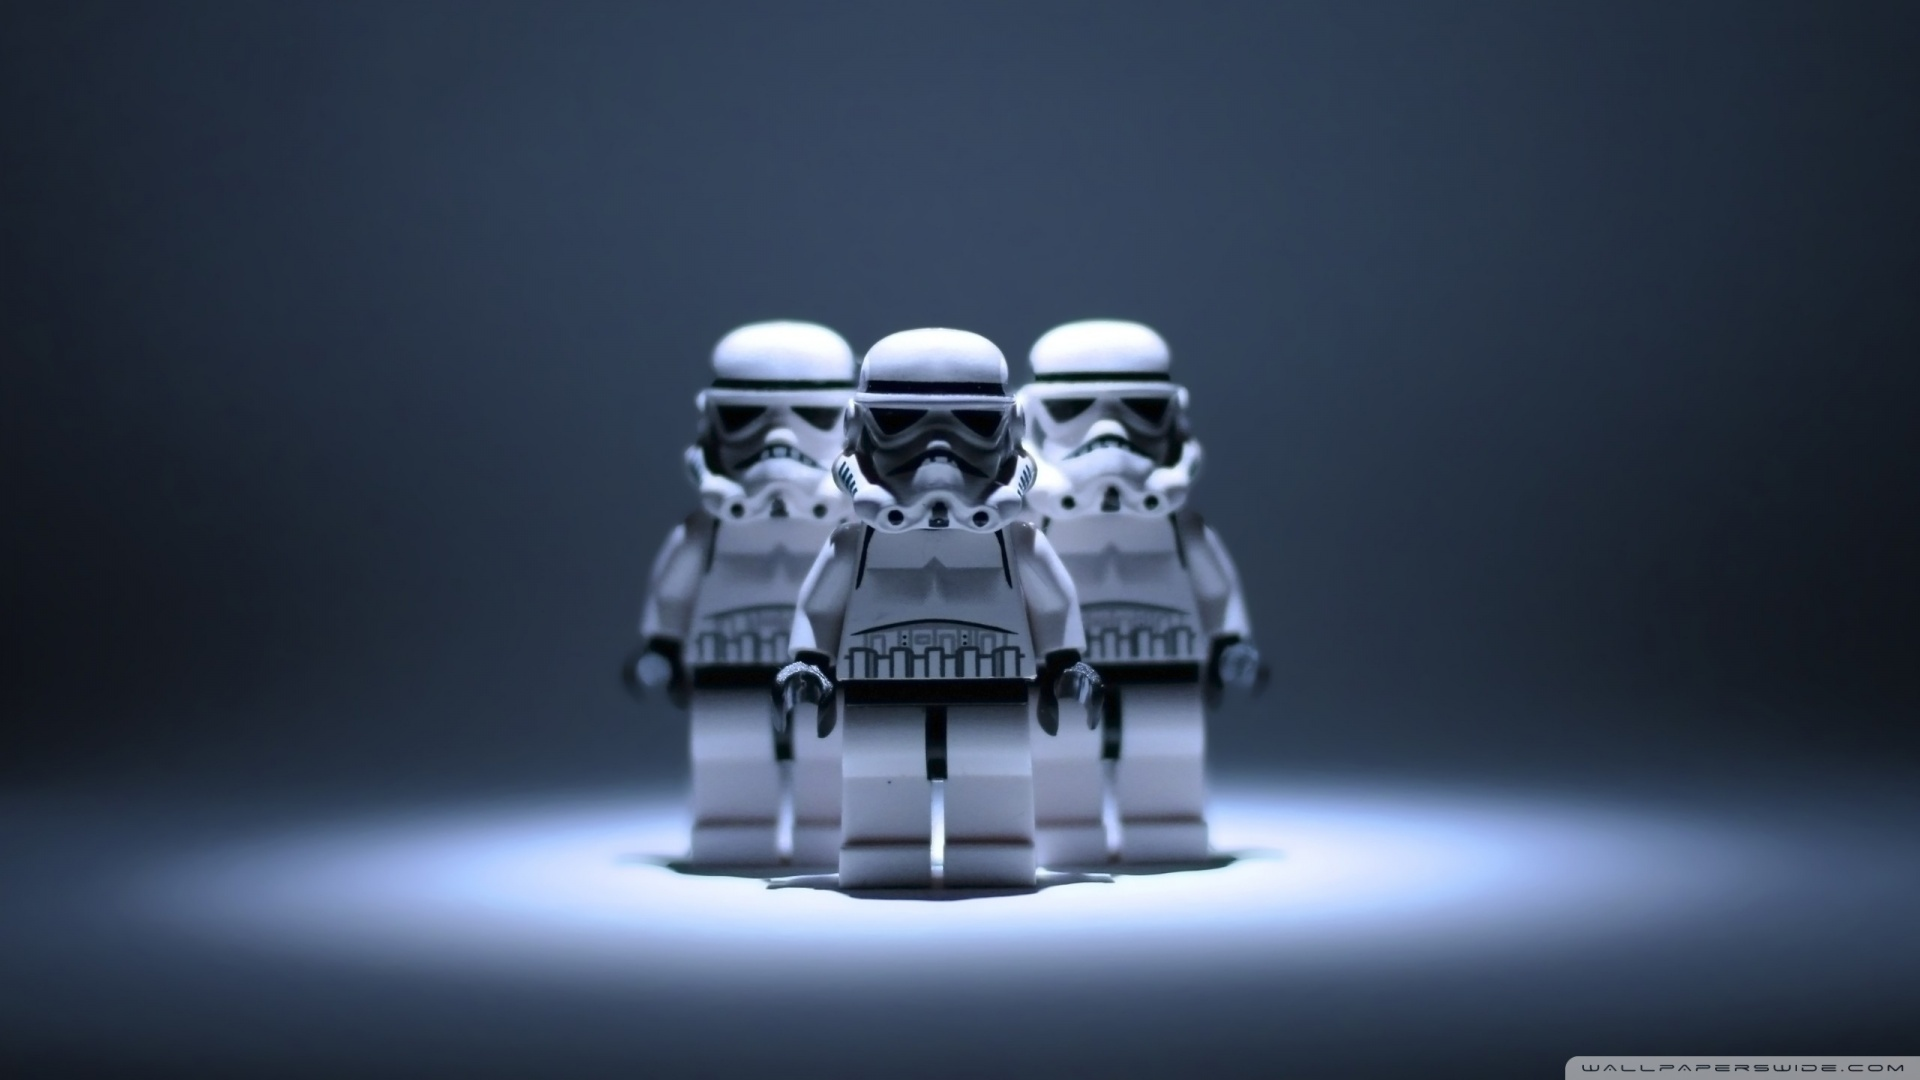 Star Wars Lego Stormtrooper Wallpaper 1920x1080 Star, Wars, Lego ...